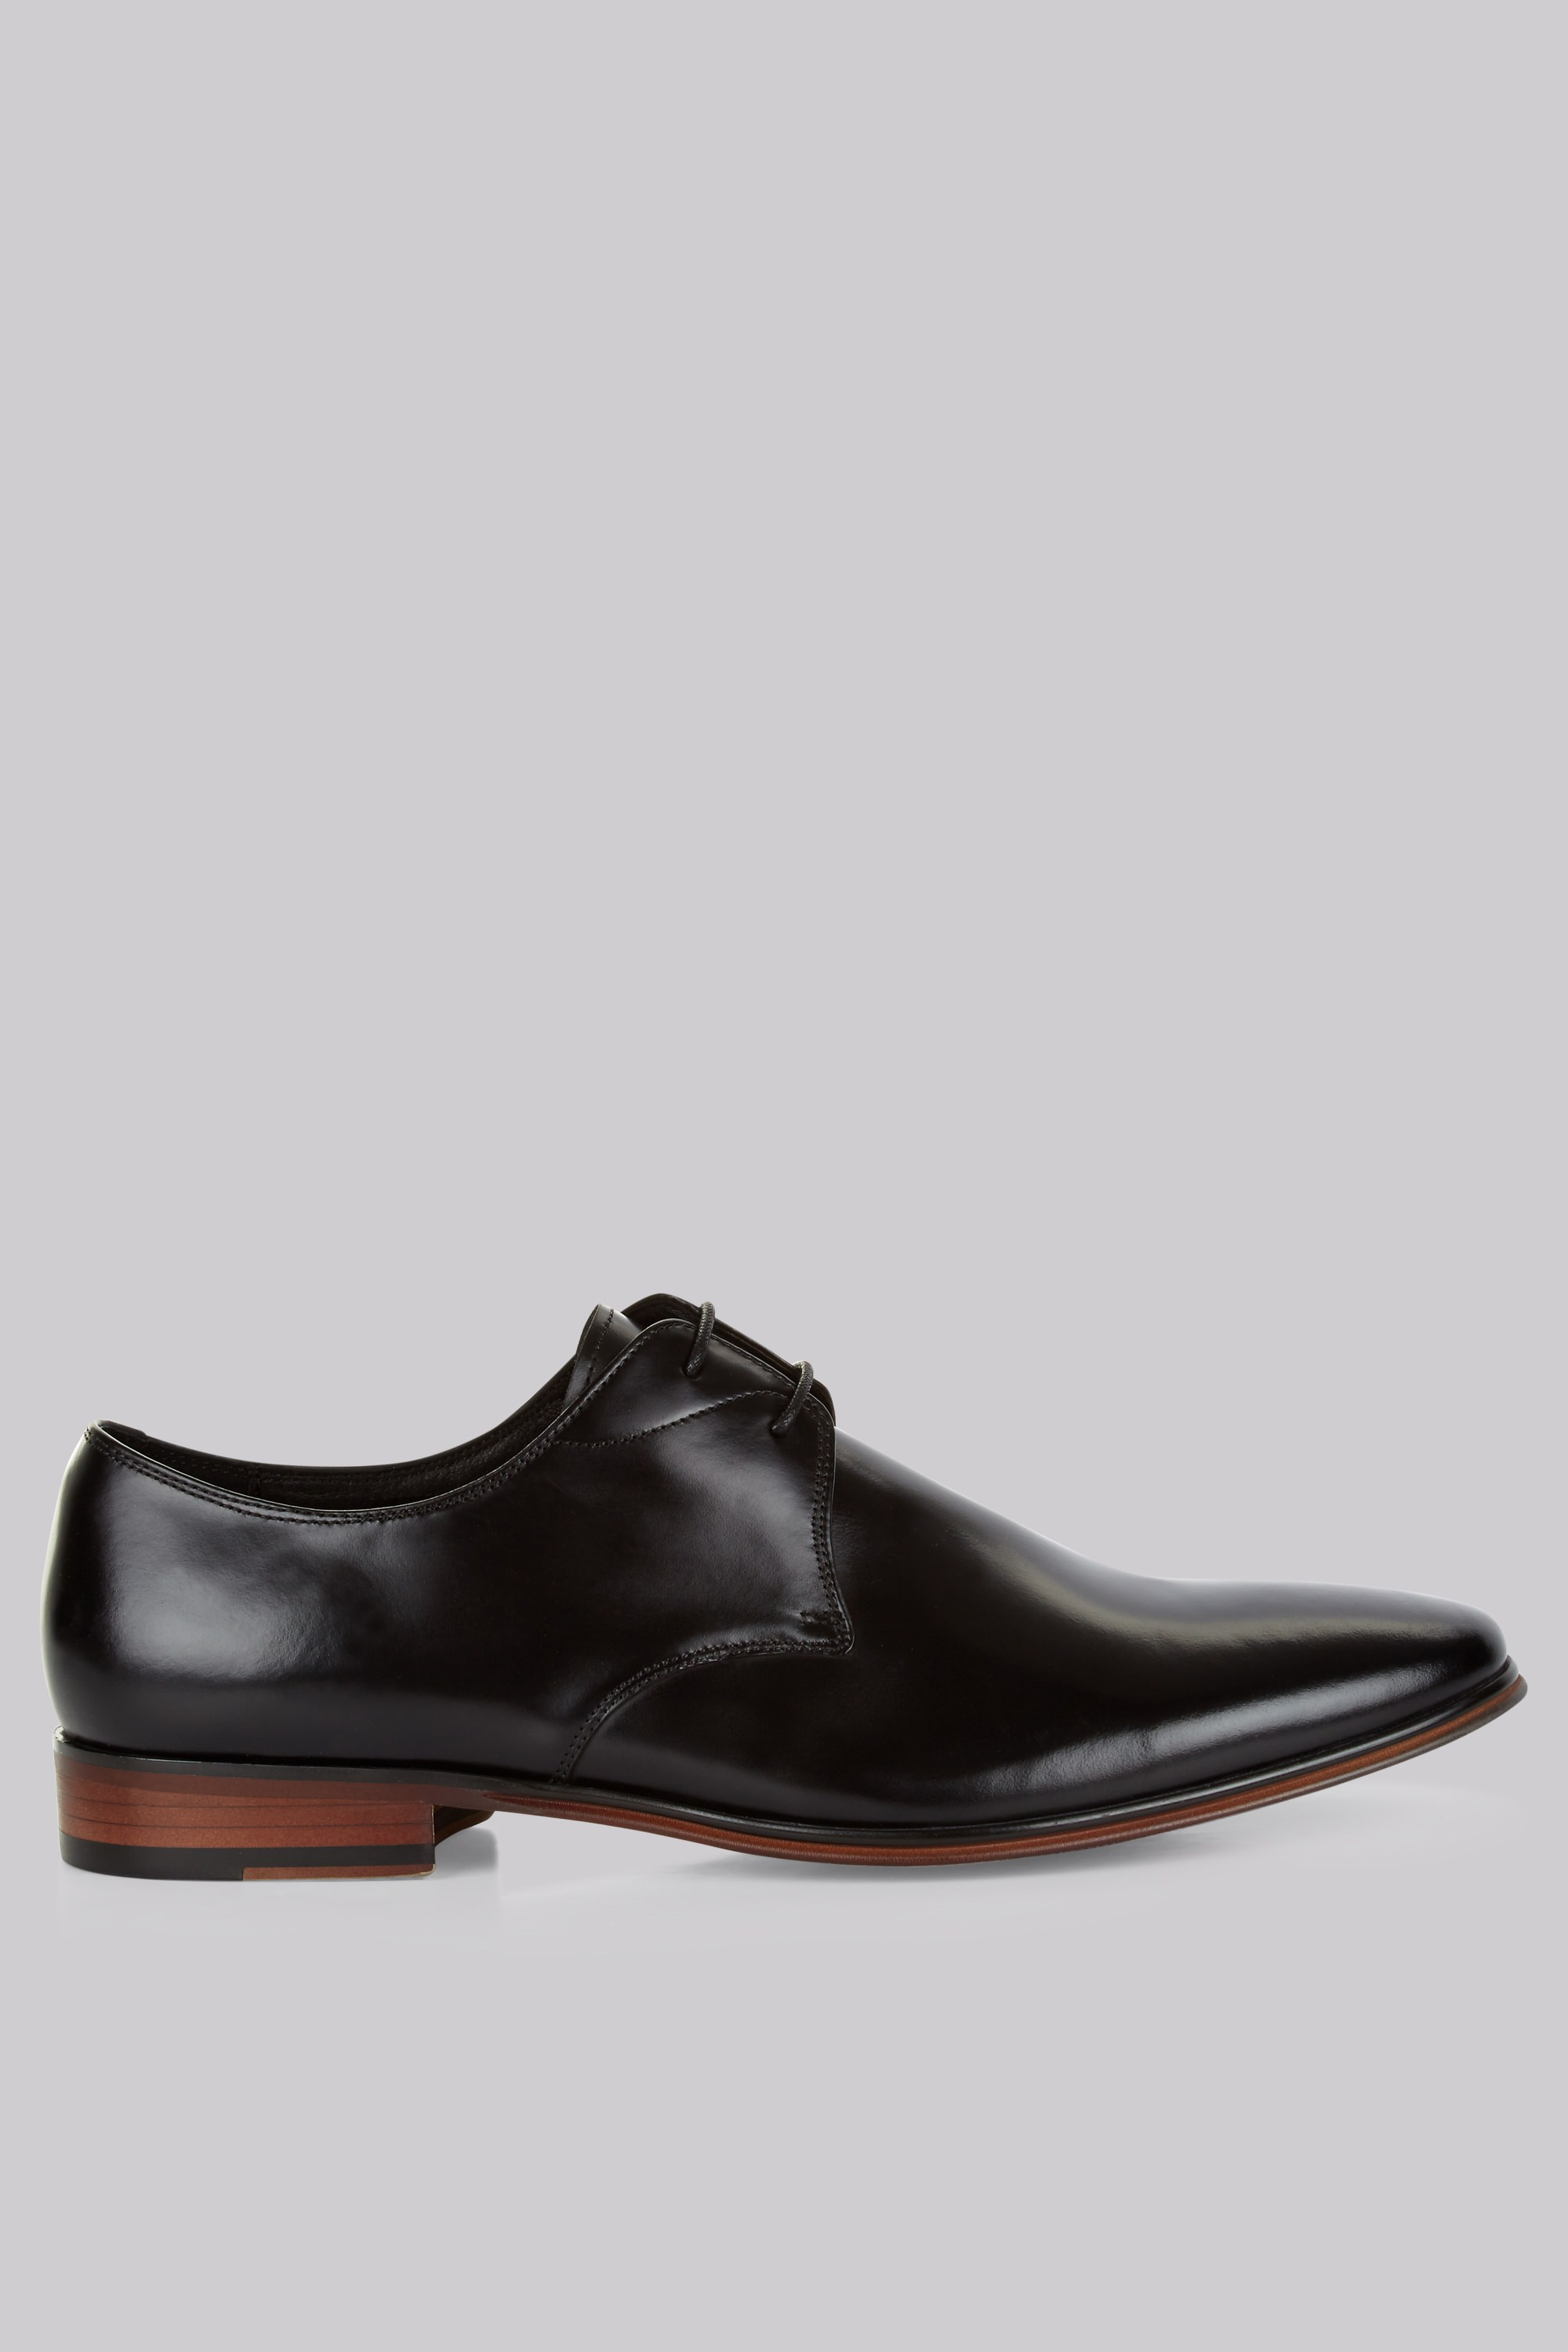 John White Derby Shoes